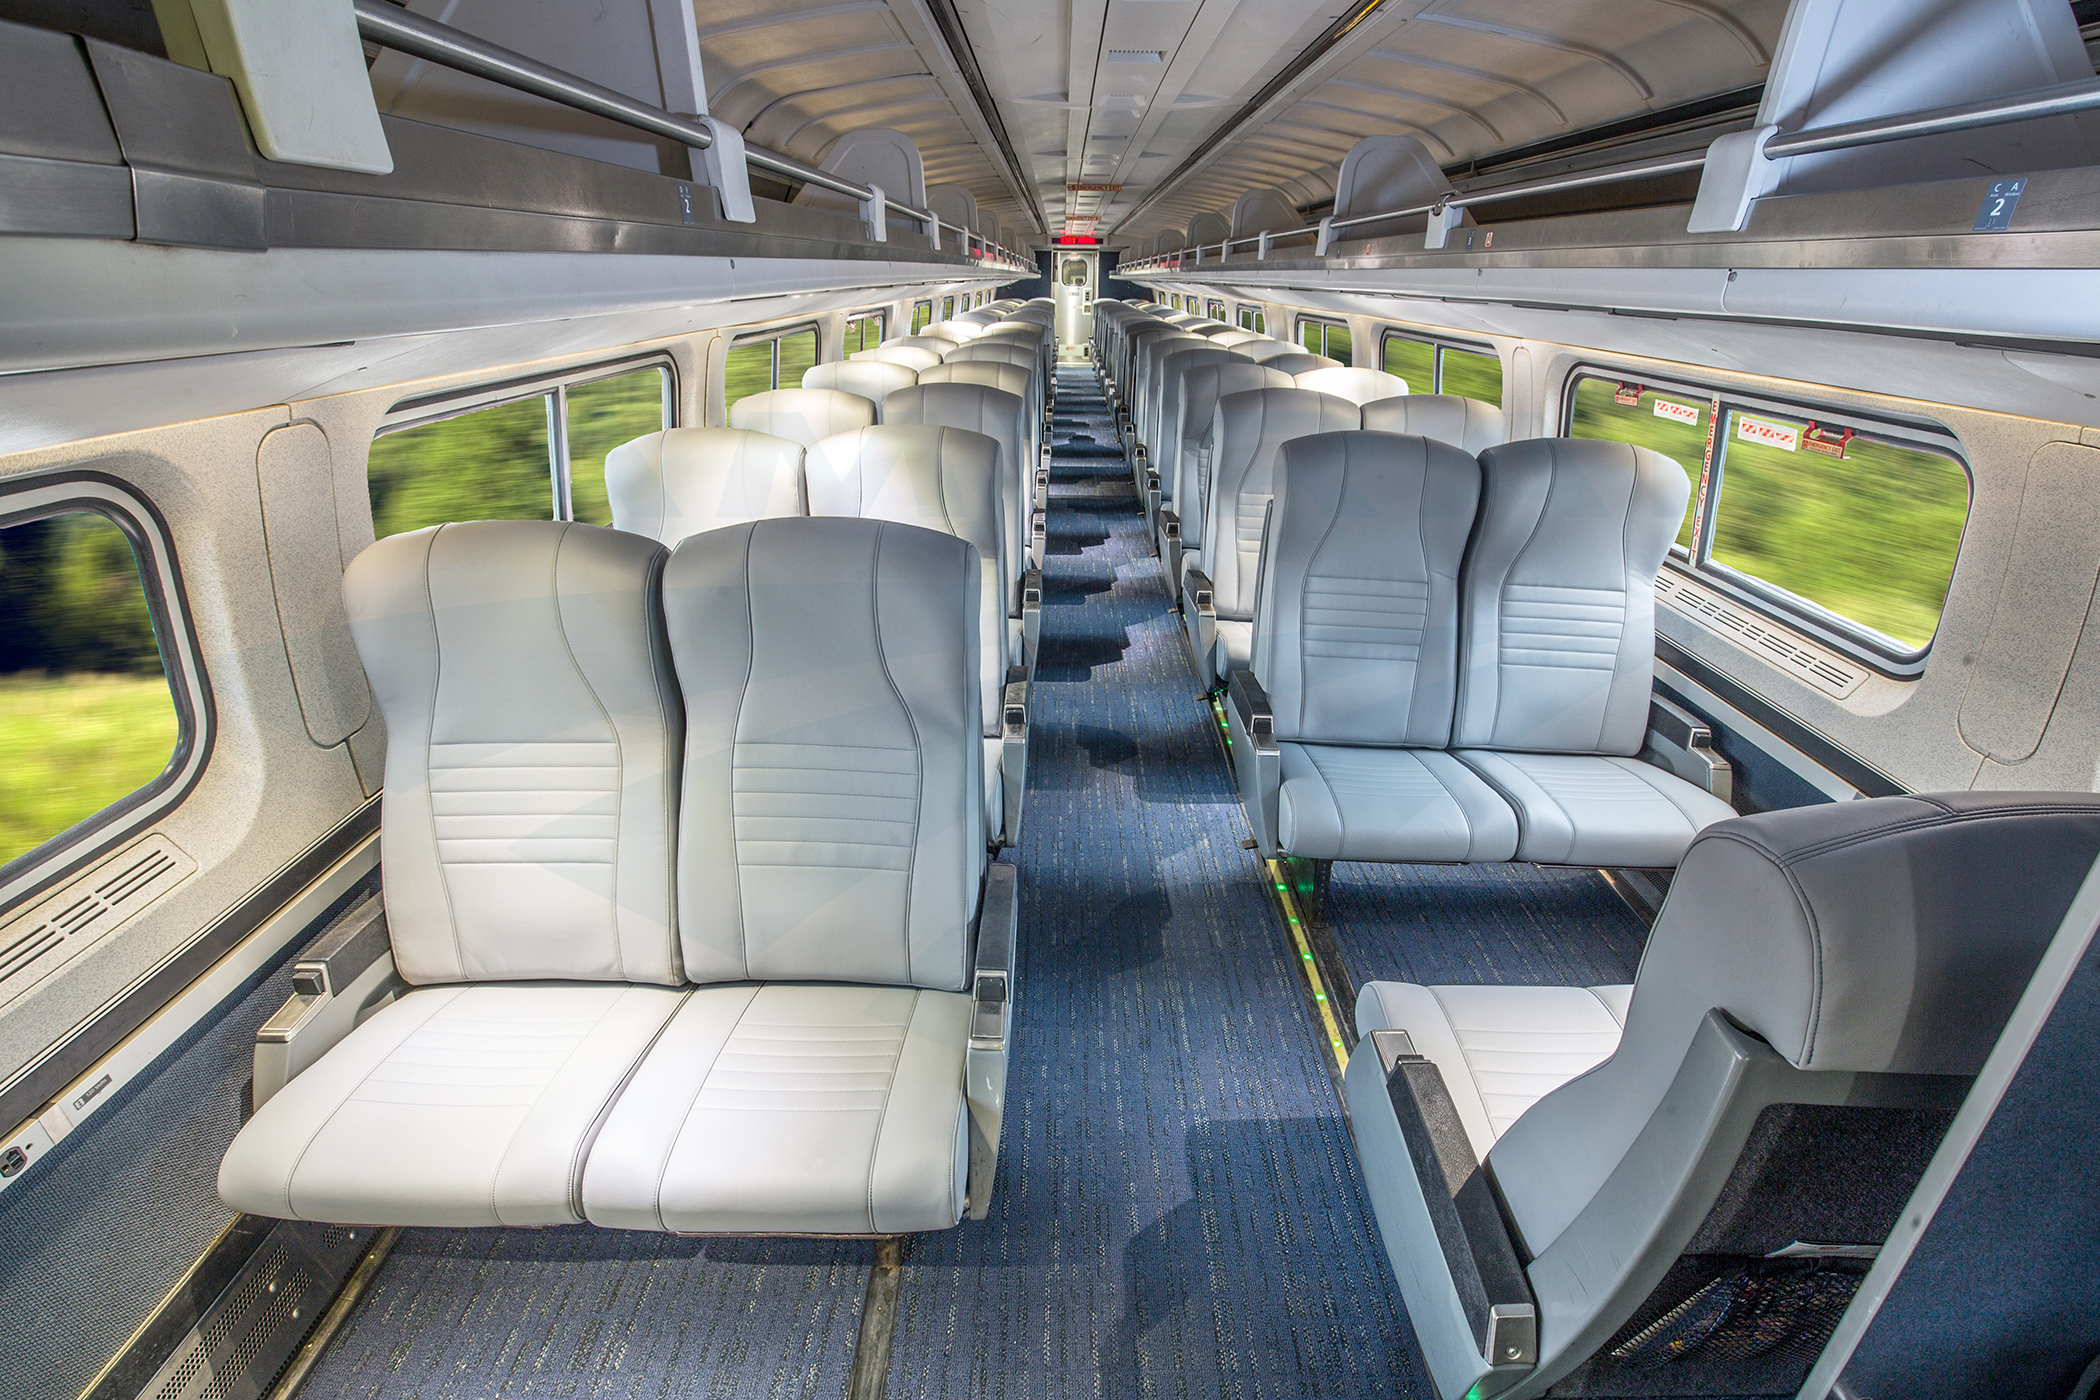 Refreshed Amfleet I Coach Class Car Interior 2017